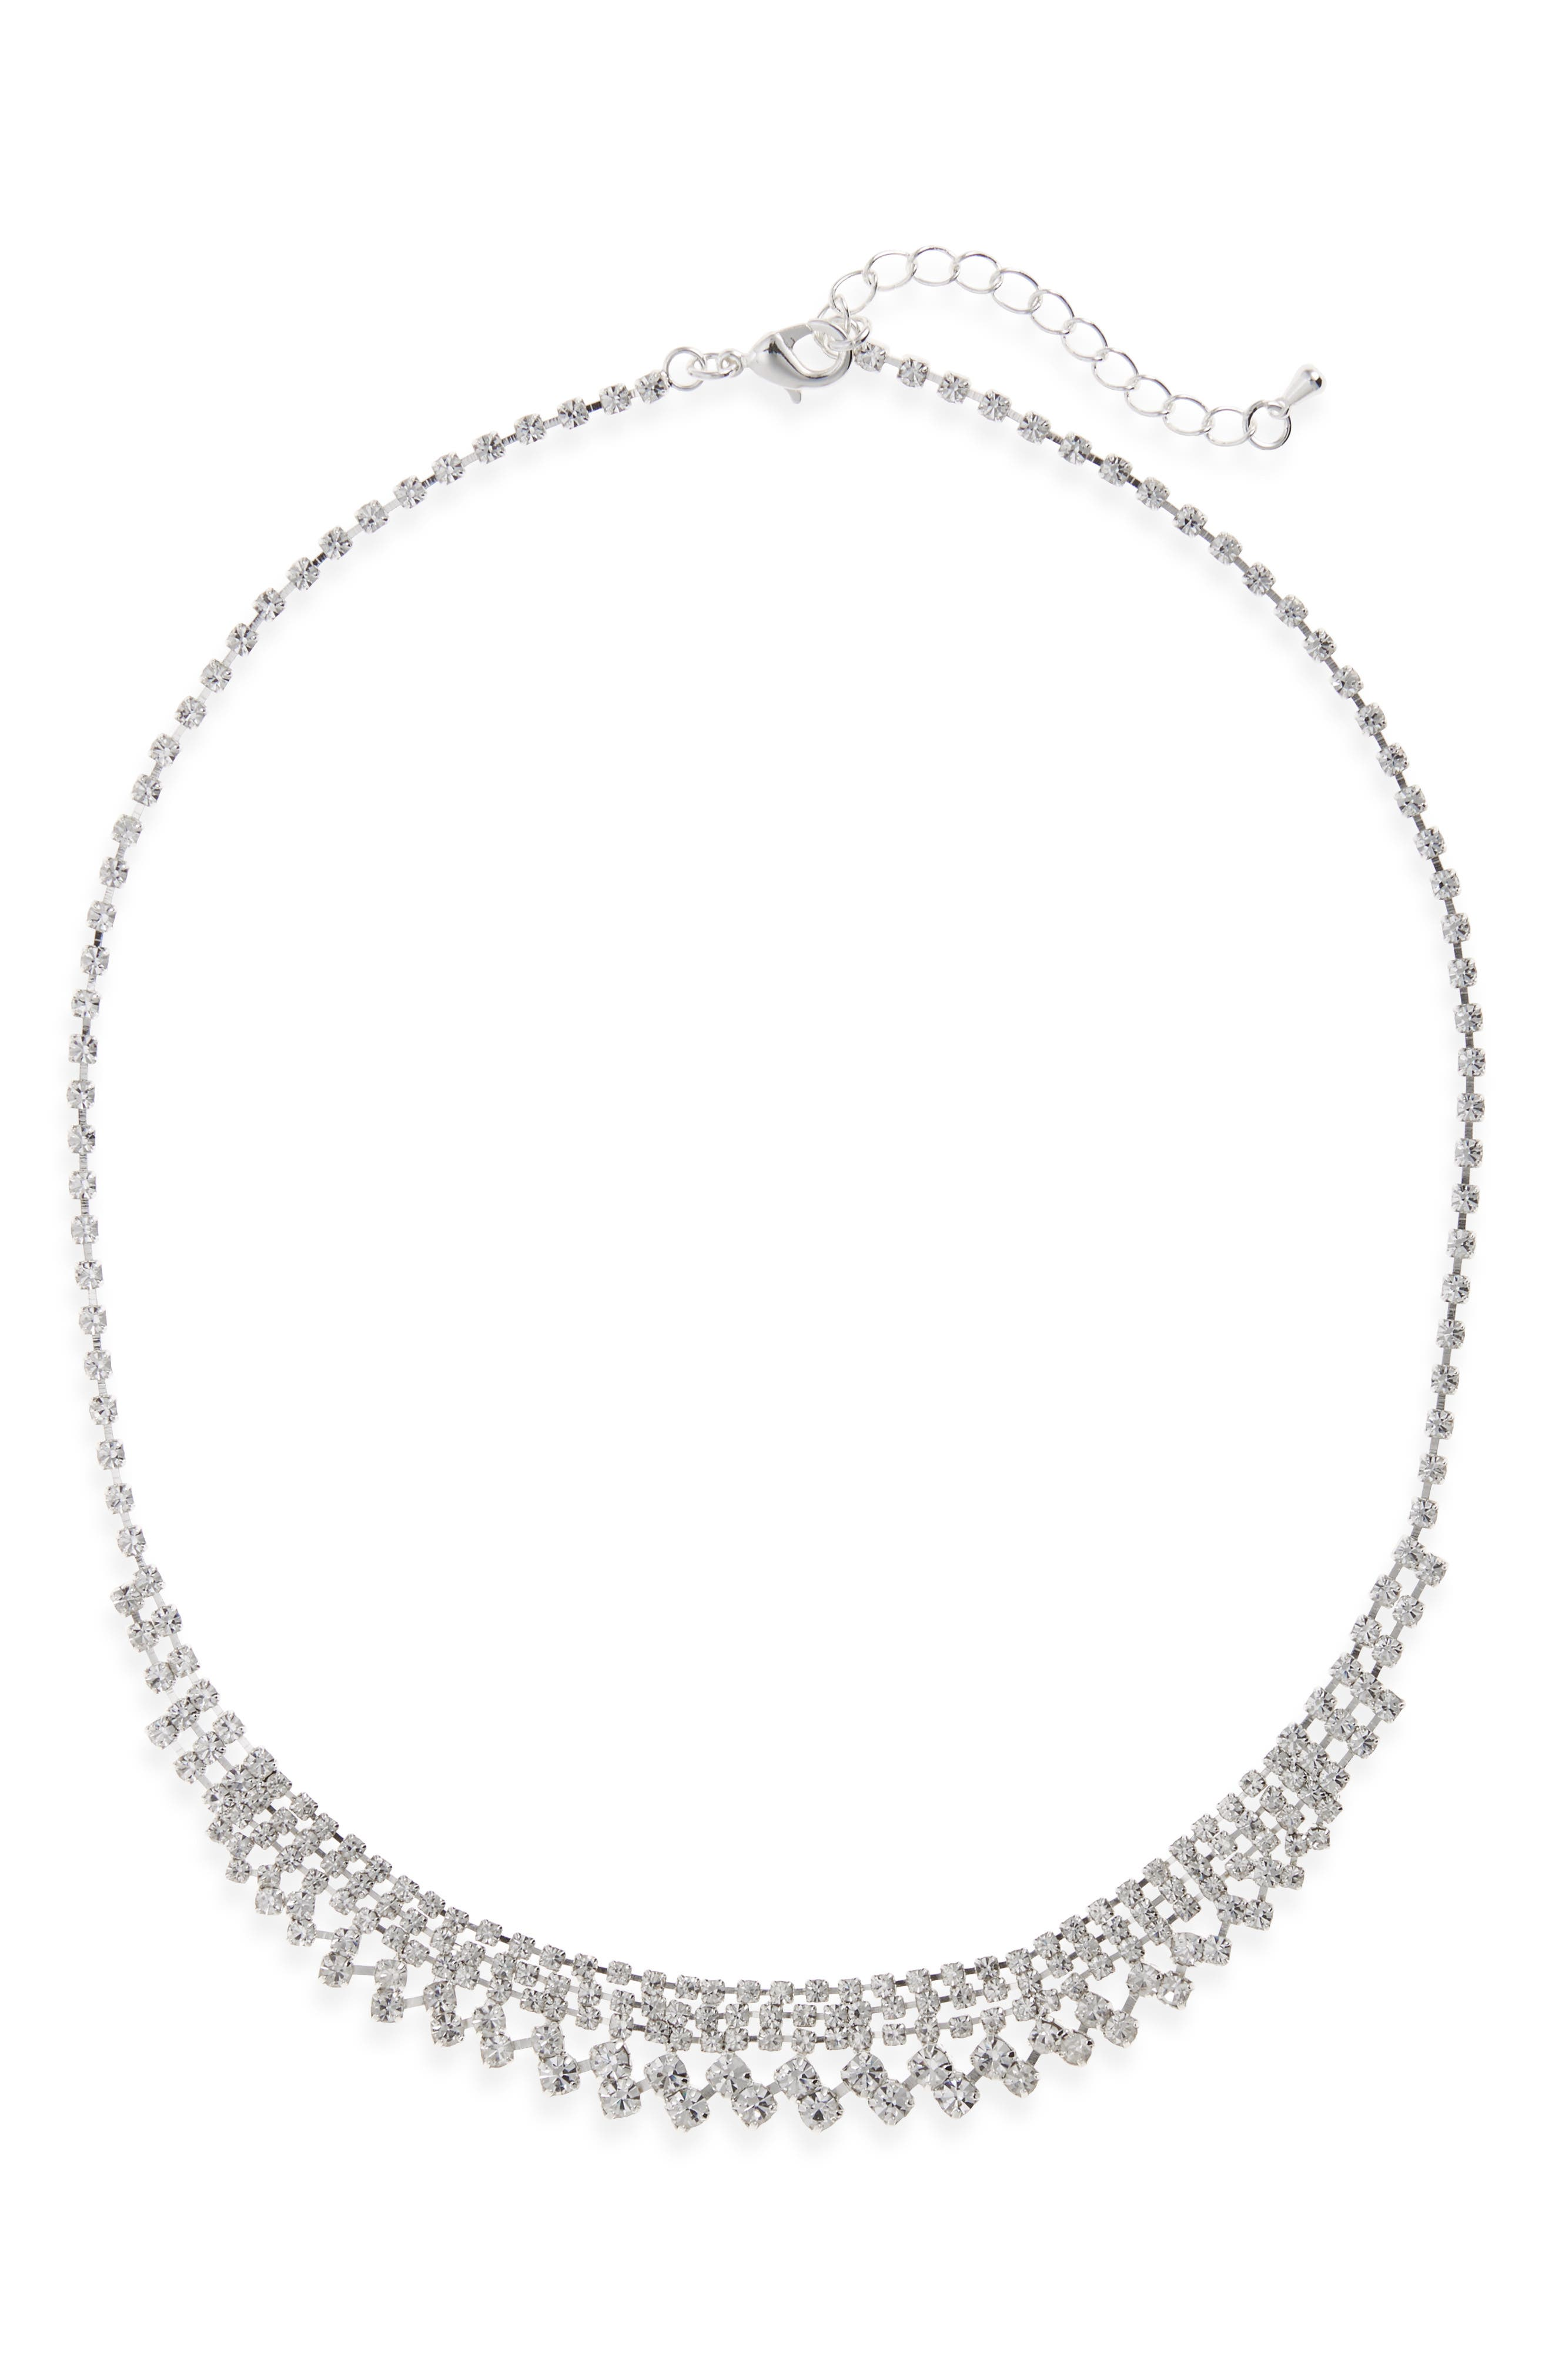 Crystal Frontal Necklace,                             Main thumbnail 1, color,                             044